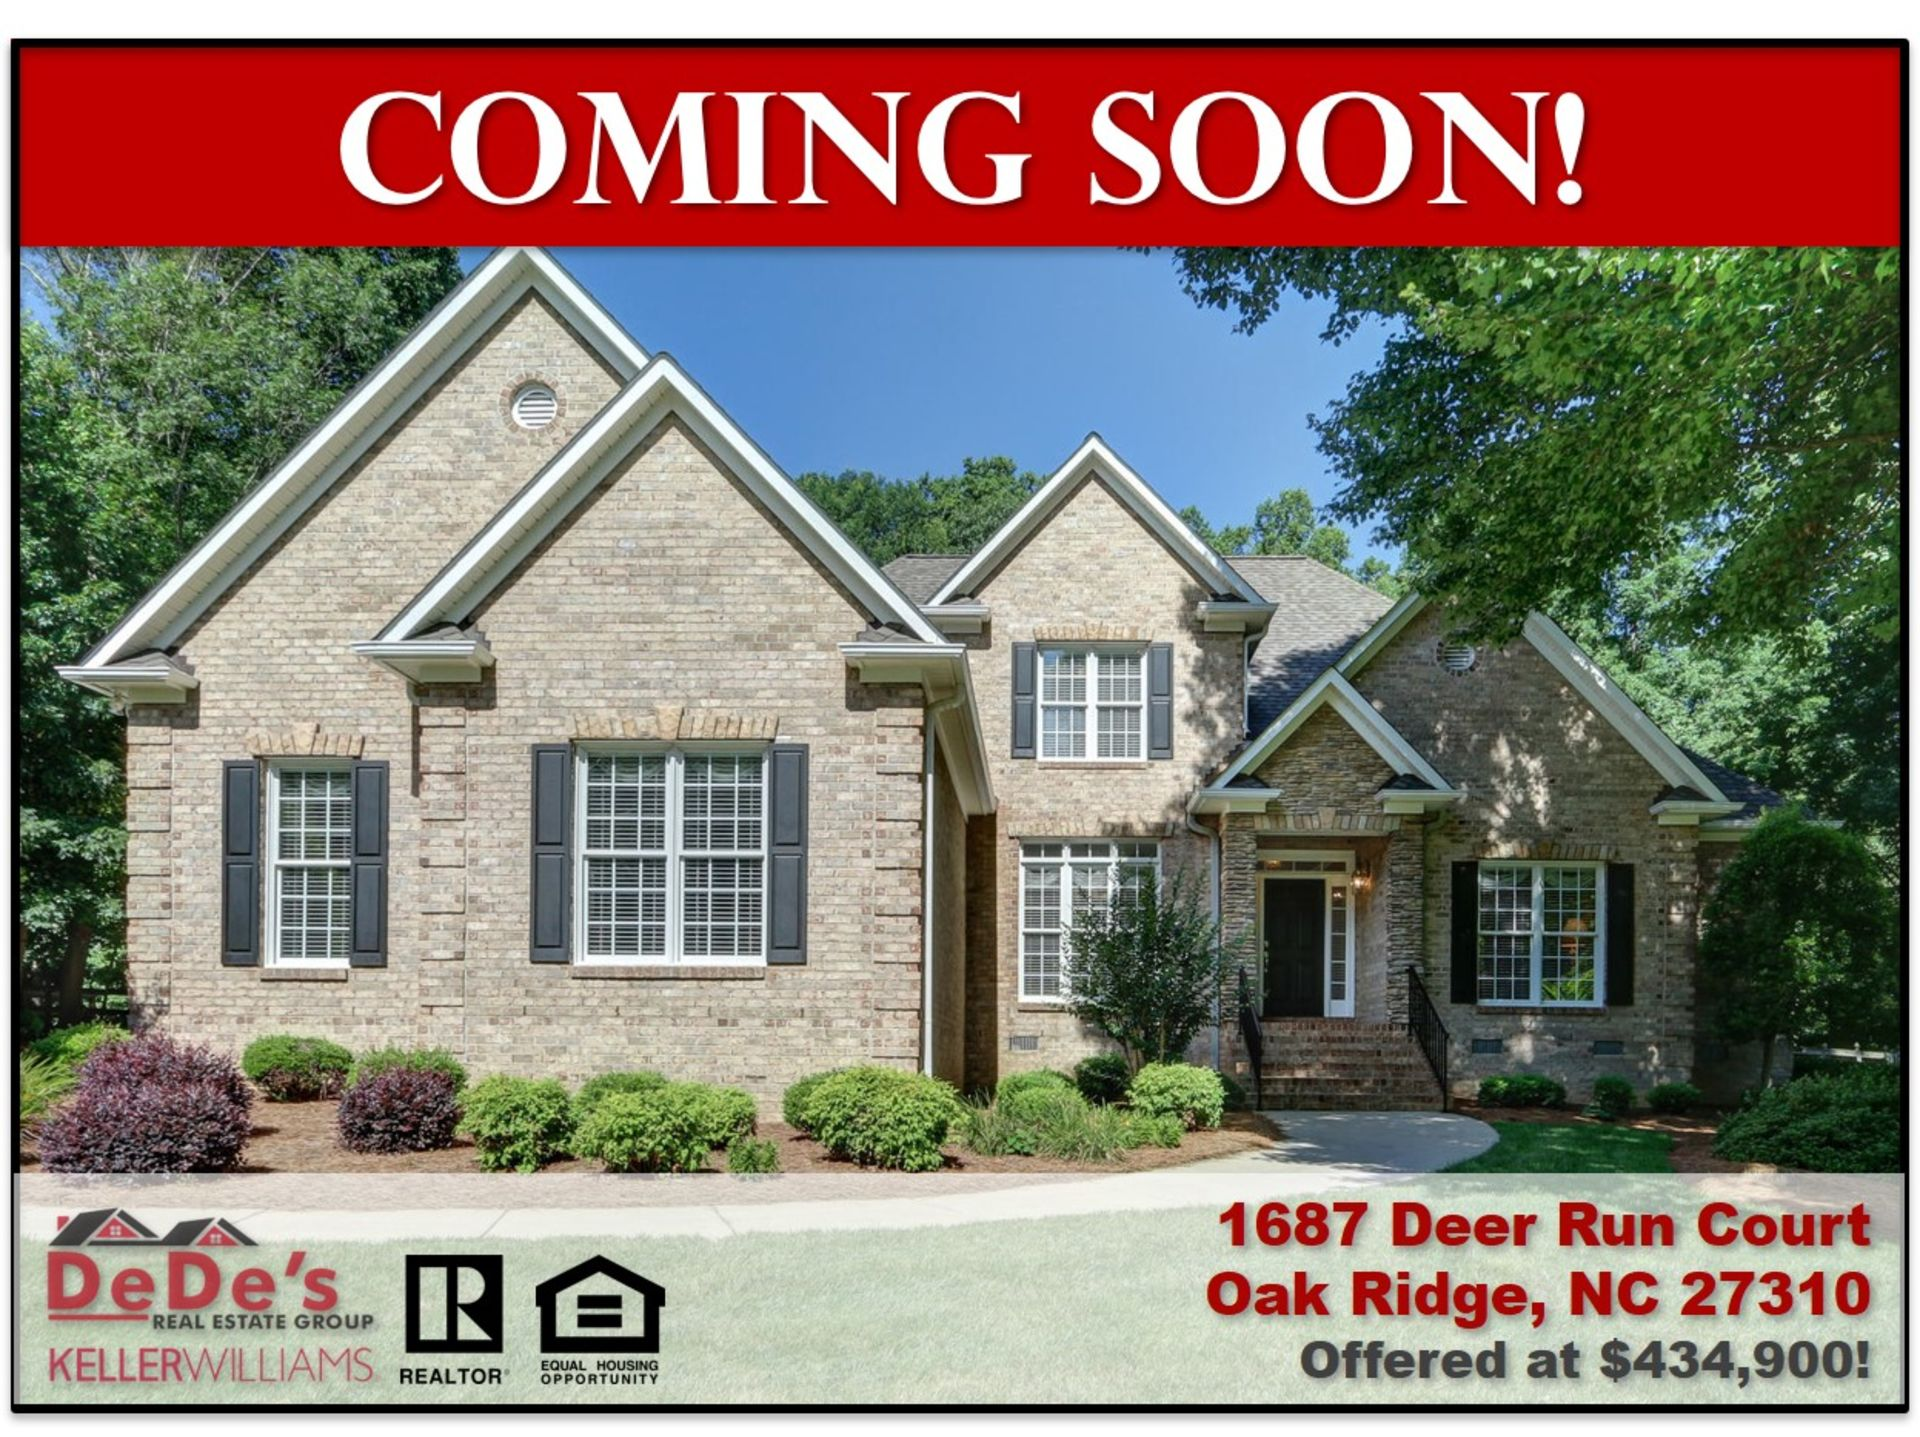 ANOTHER HOME COMING ON THE MARKET NEXT WEEK!